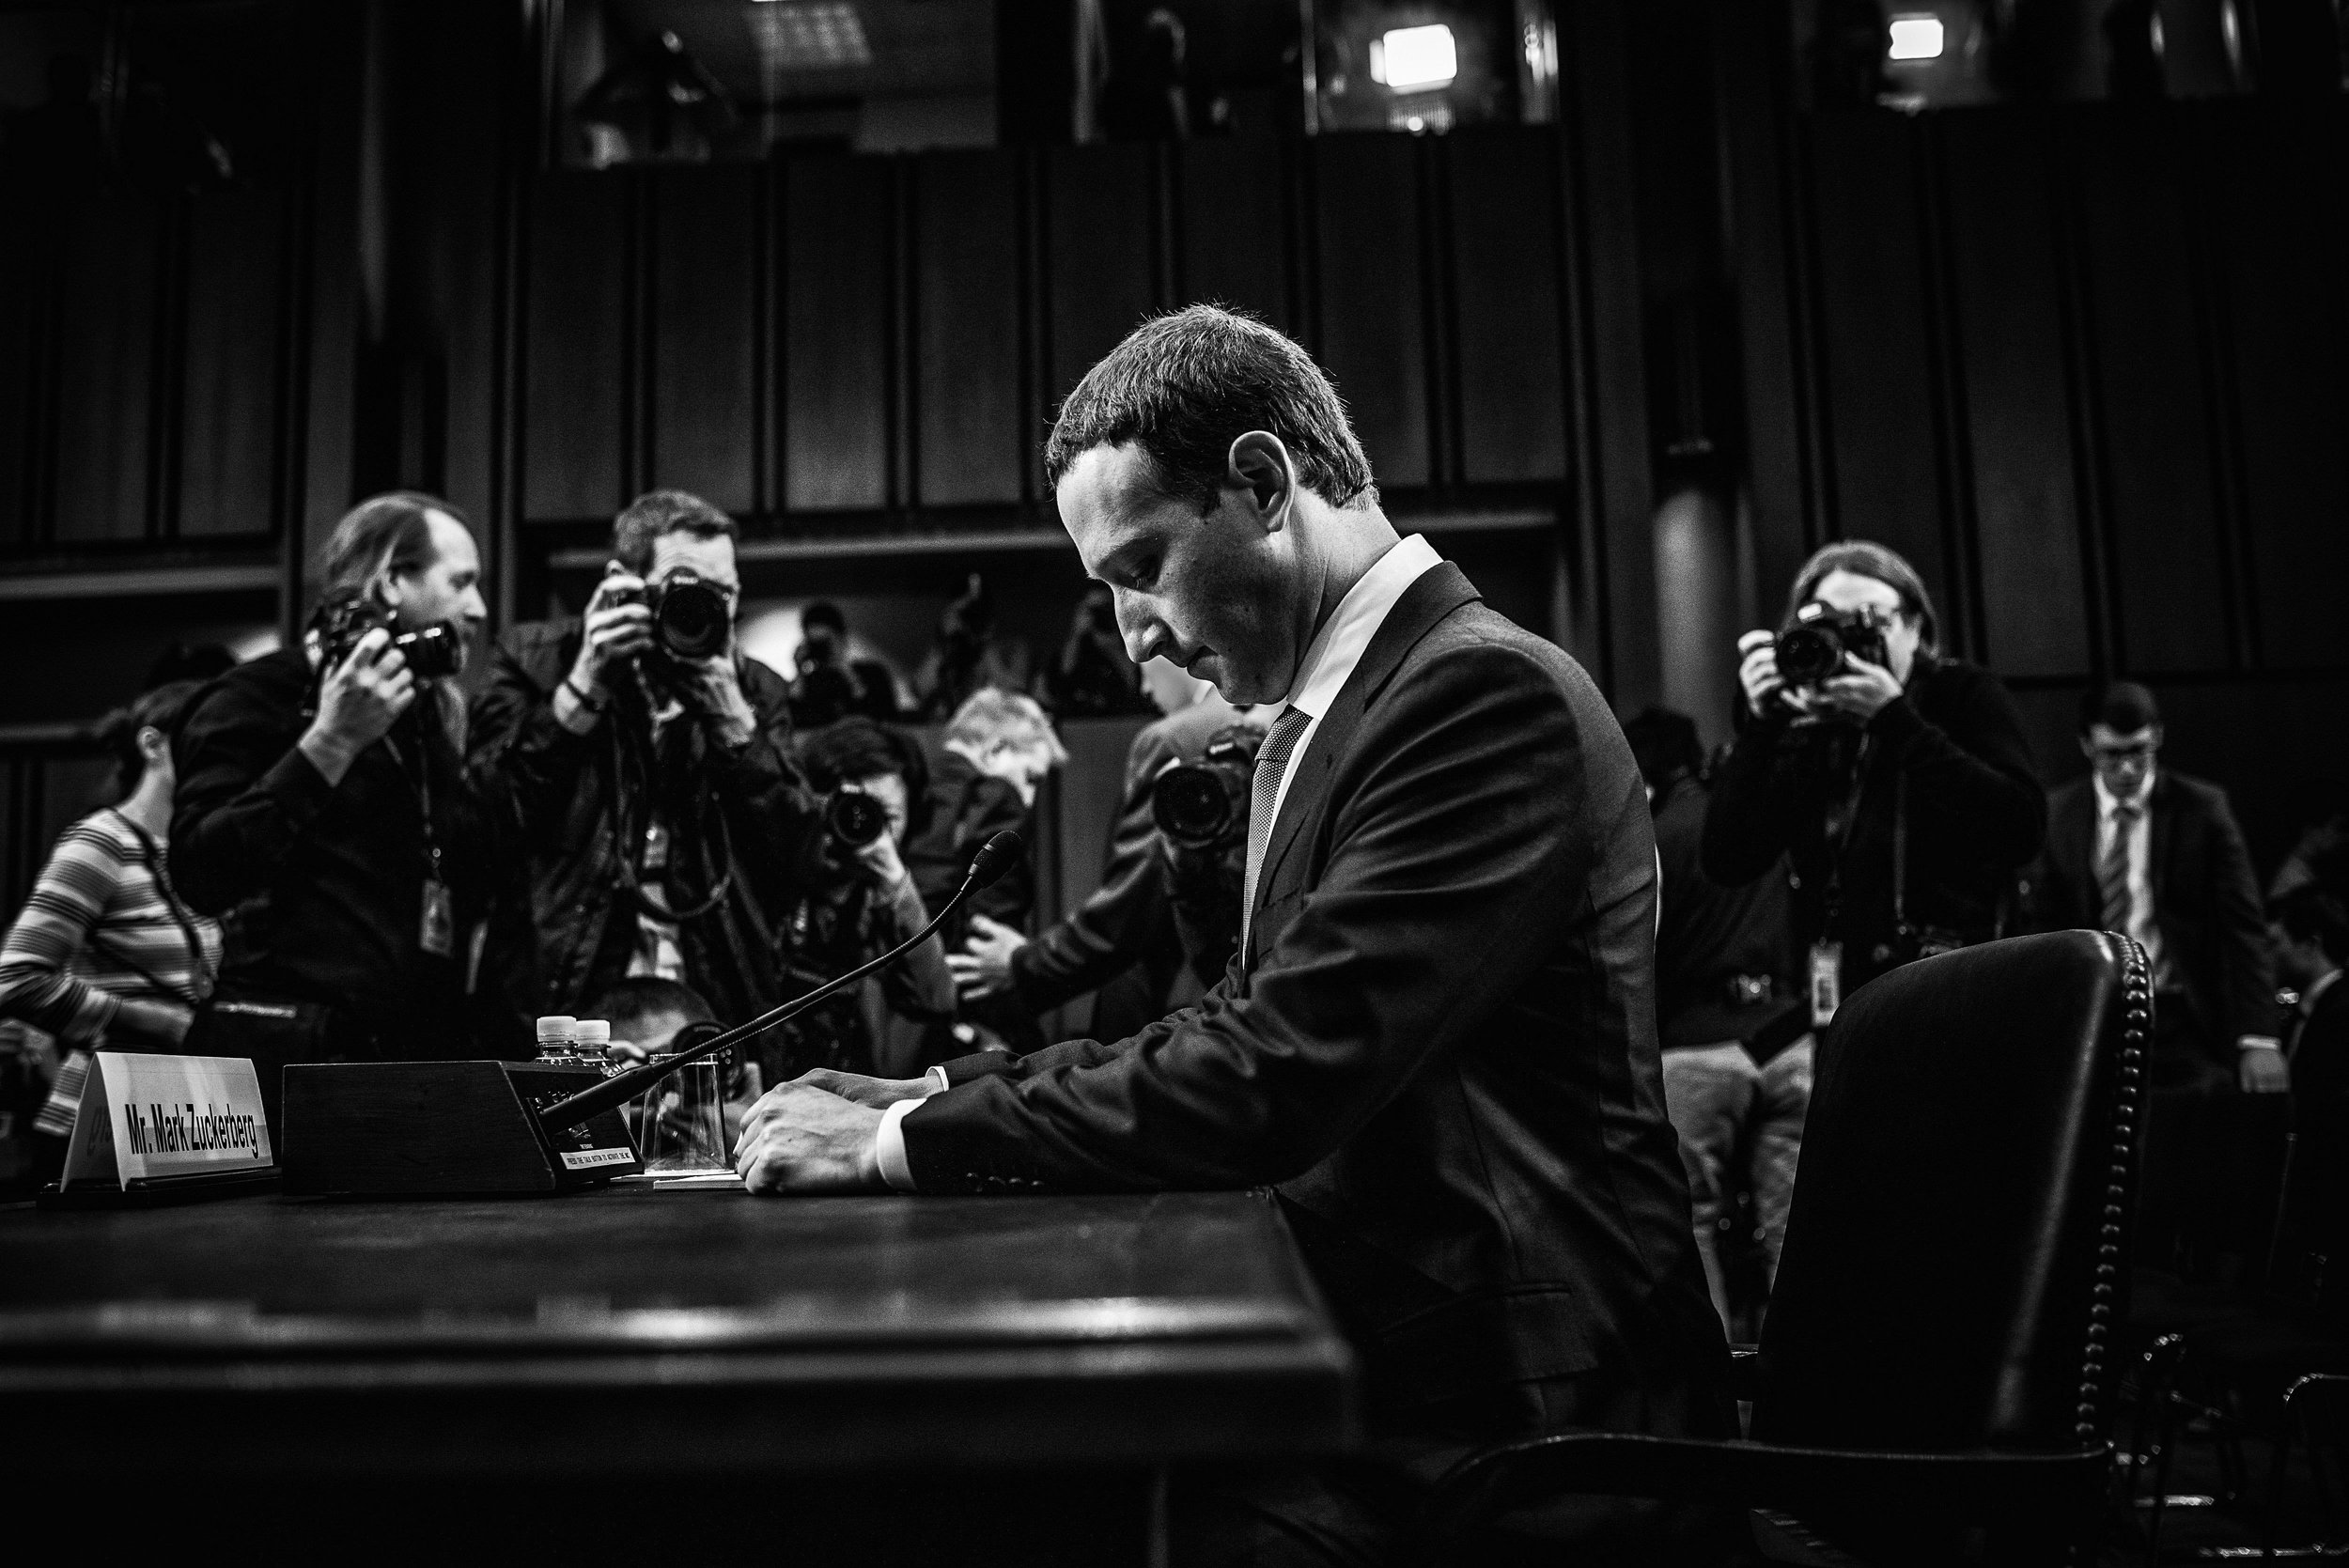 Day 446: Facebook CEO Mark Zuckerberg arrives to testify before a joint hearing of the Commerce and Judiciary Committees, in Washington, DC on Tuesday, April 10, 2018.